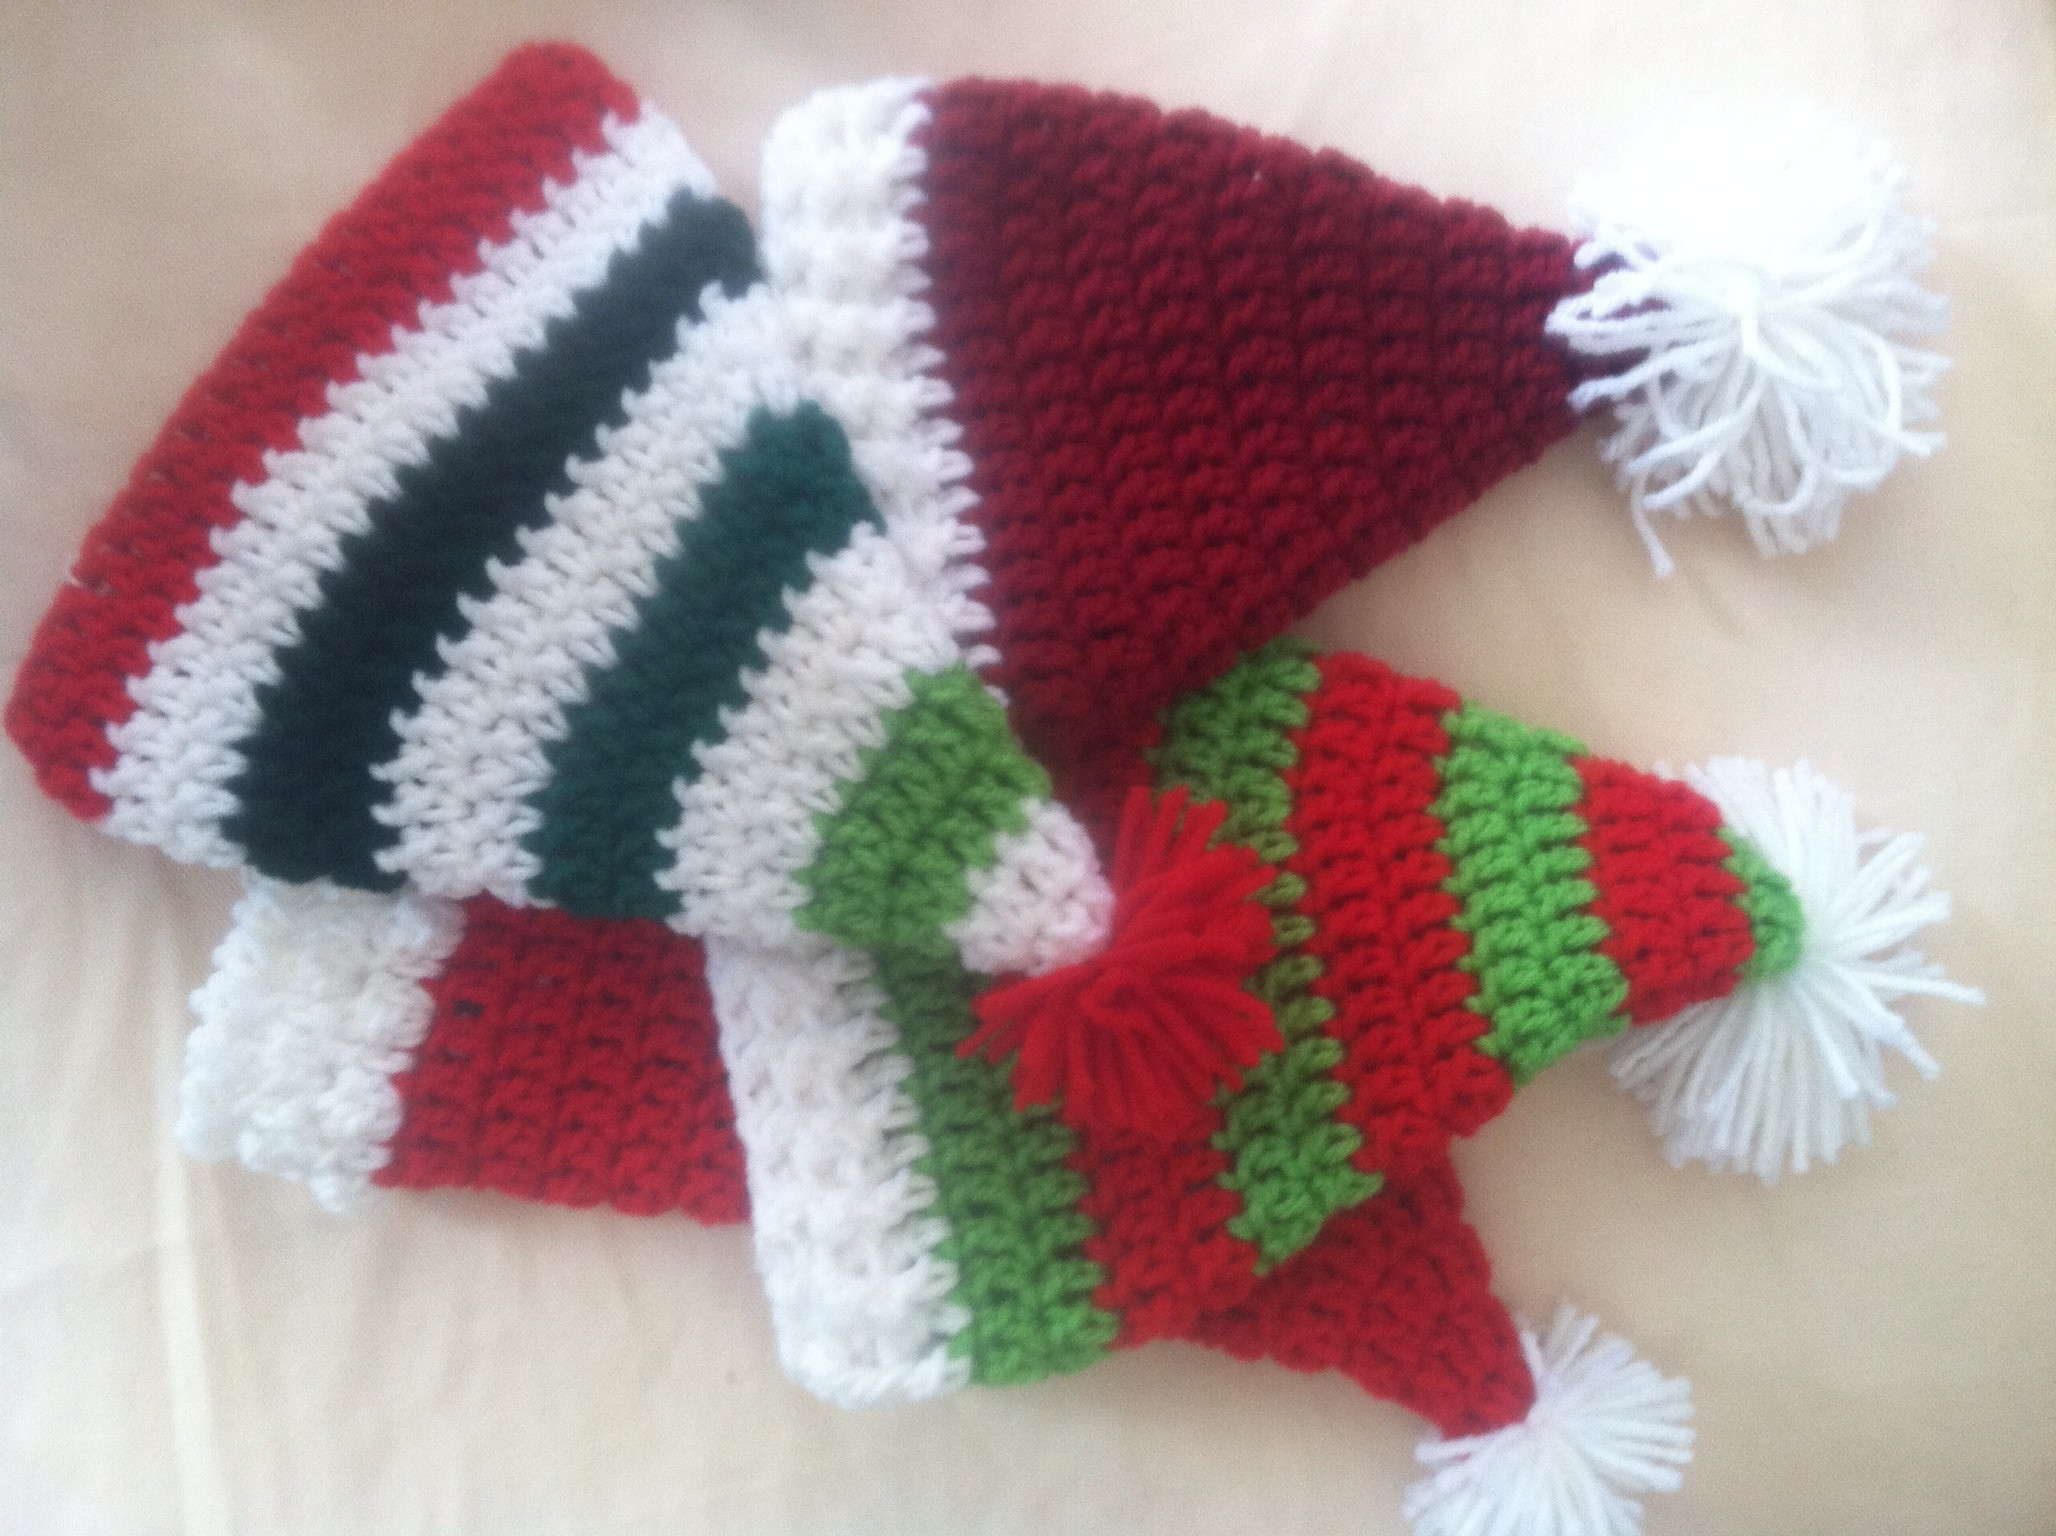 New Santa Hats Crochet Free Pattern – Family Bugs Crochet Designs Santa Hat Pattern Of Unique Baby Santa Hats – Tag Hats Santa Hat Pattern